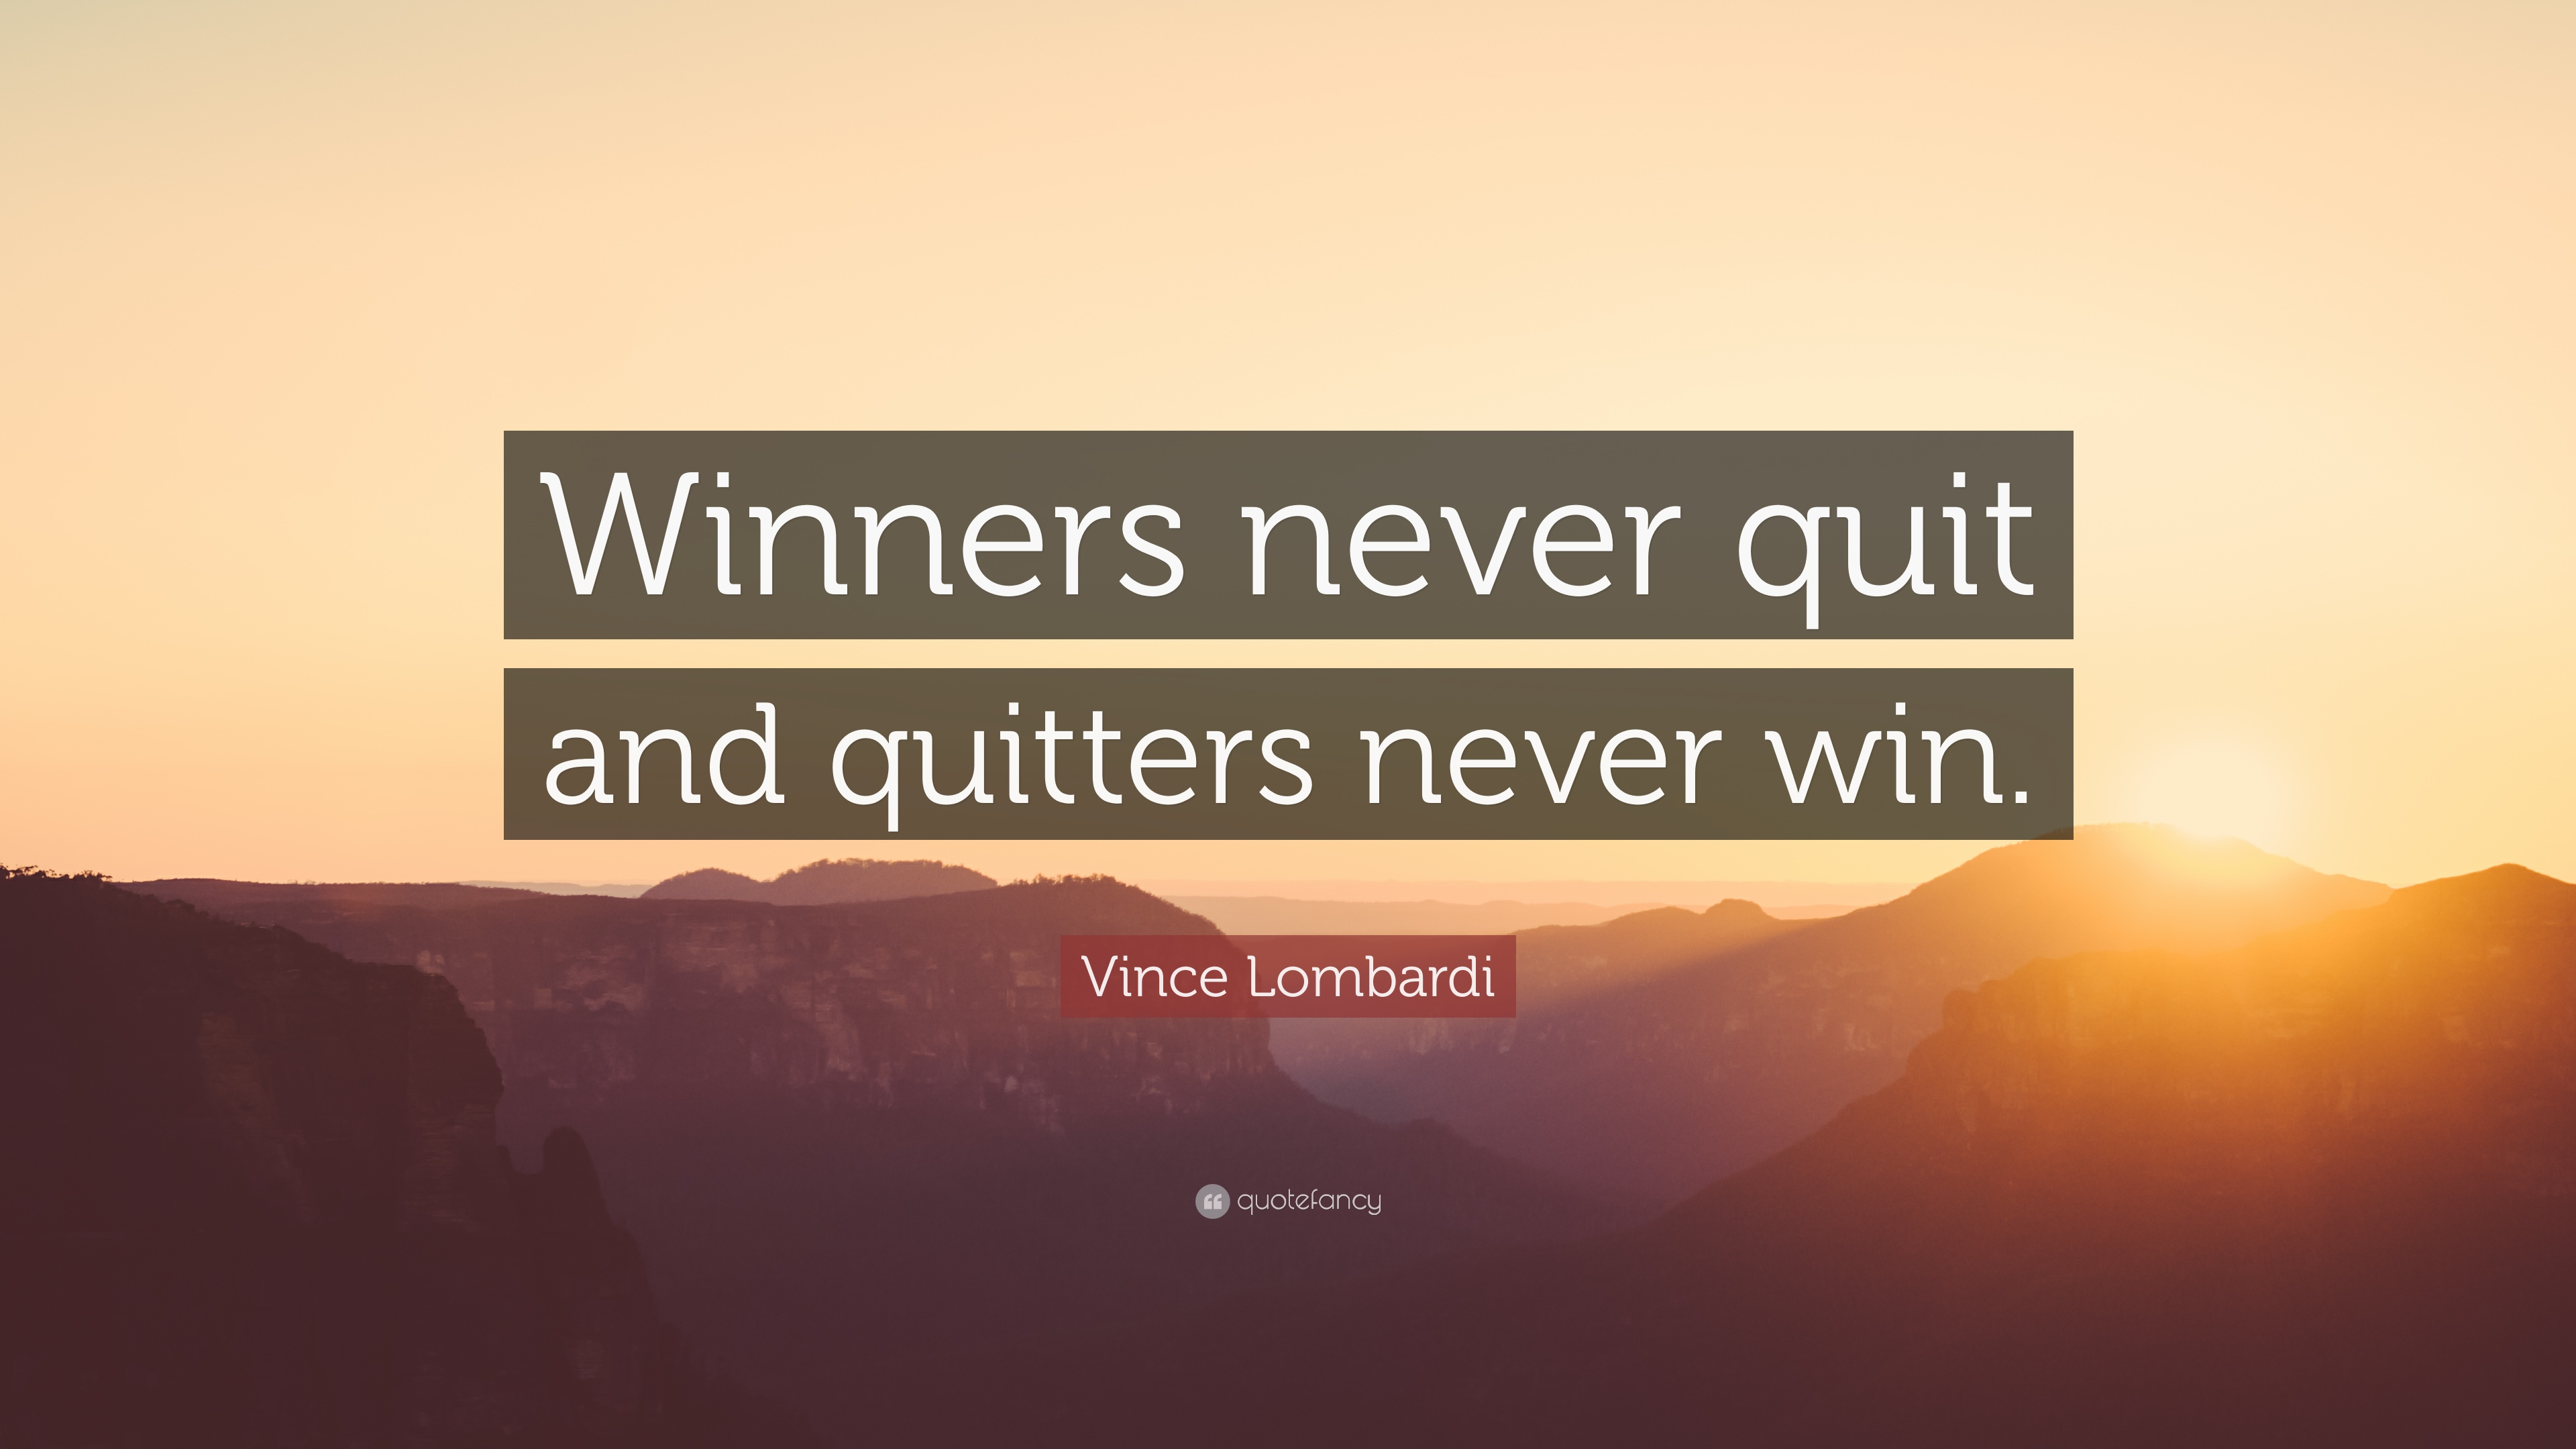 essay on winners never quit quitters never win